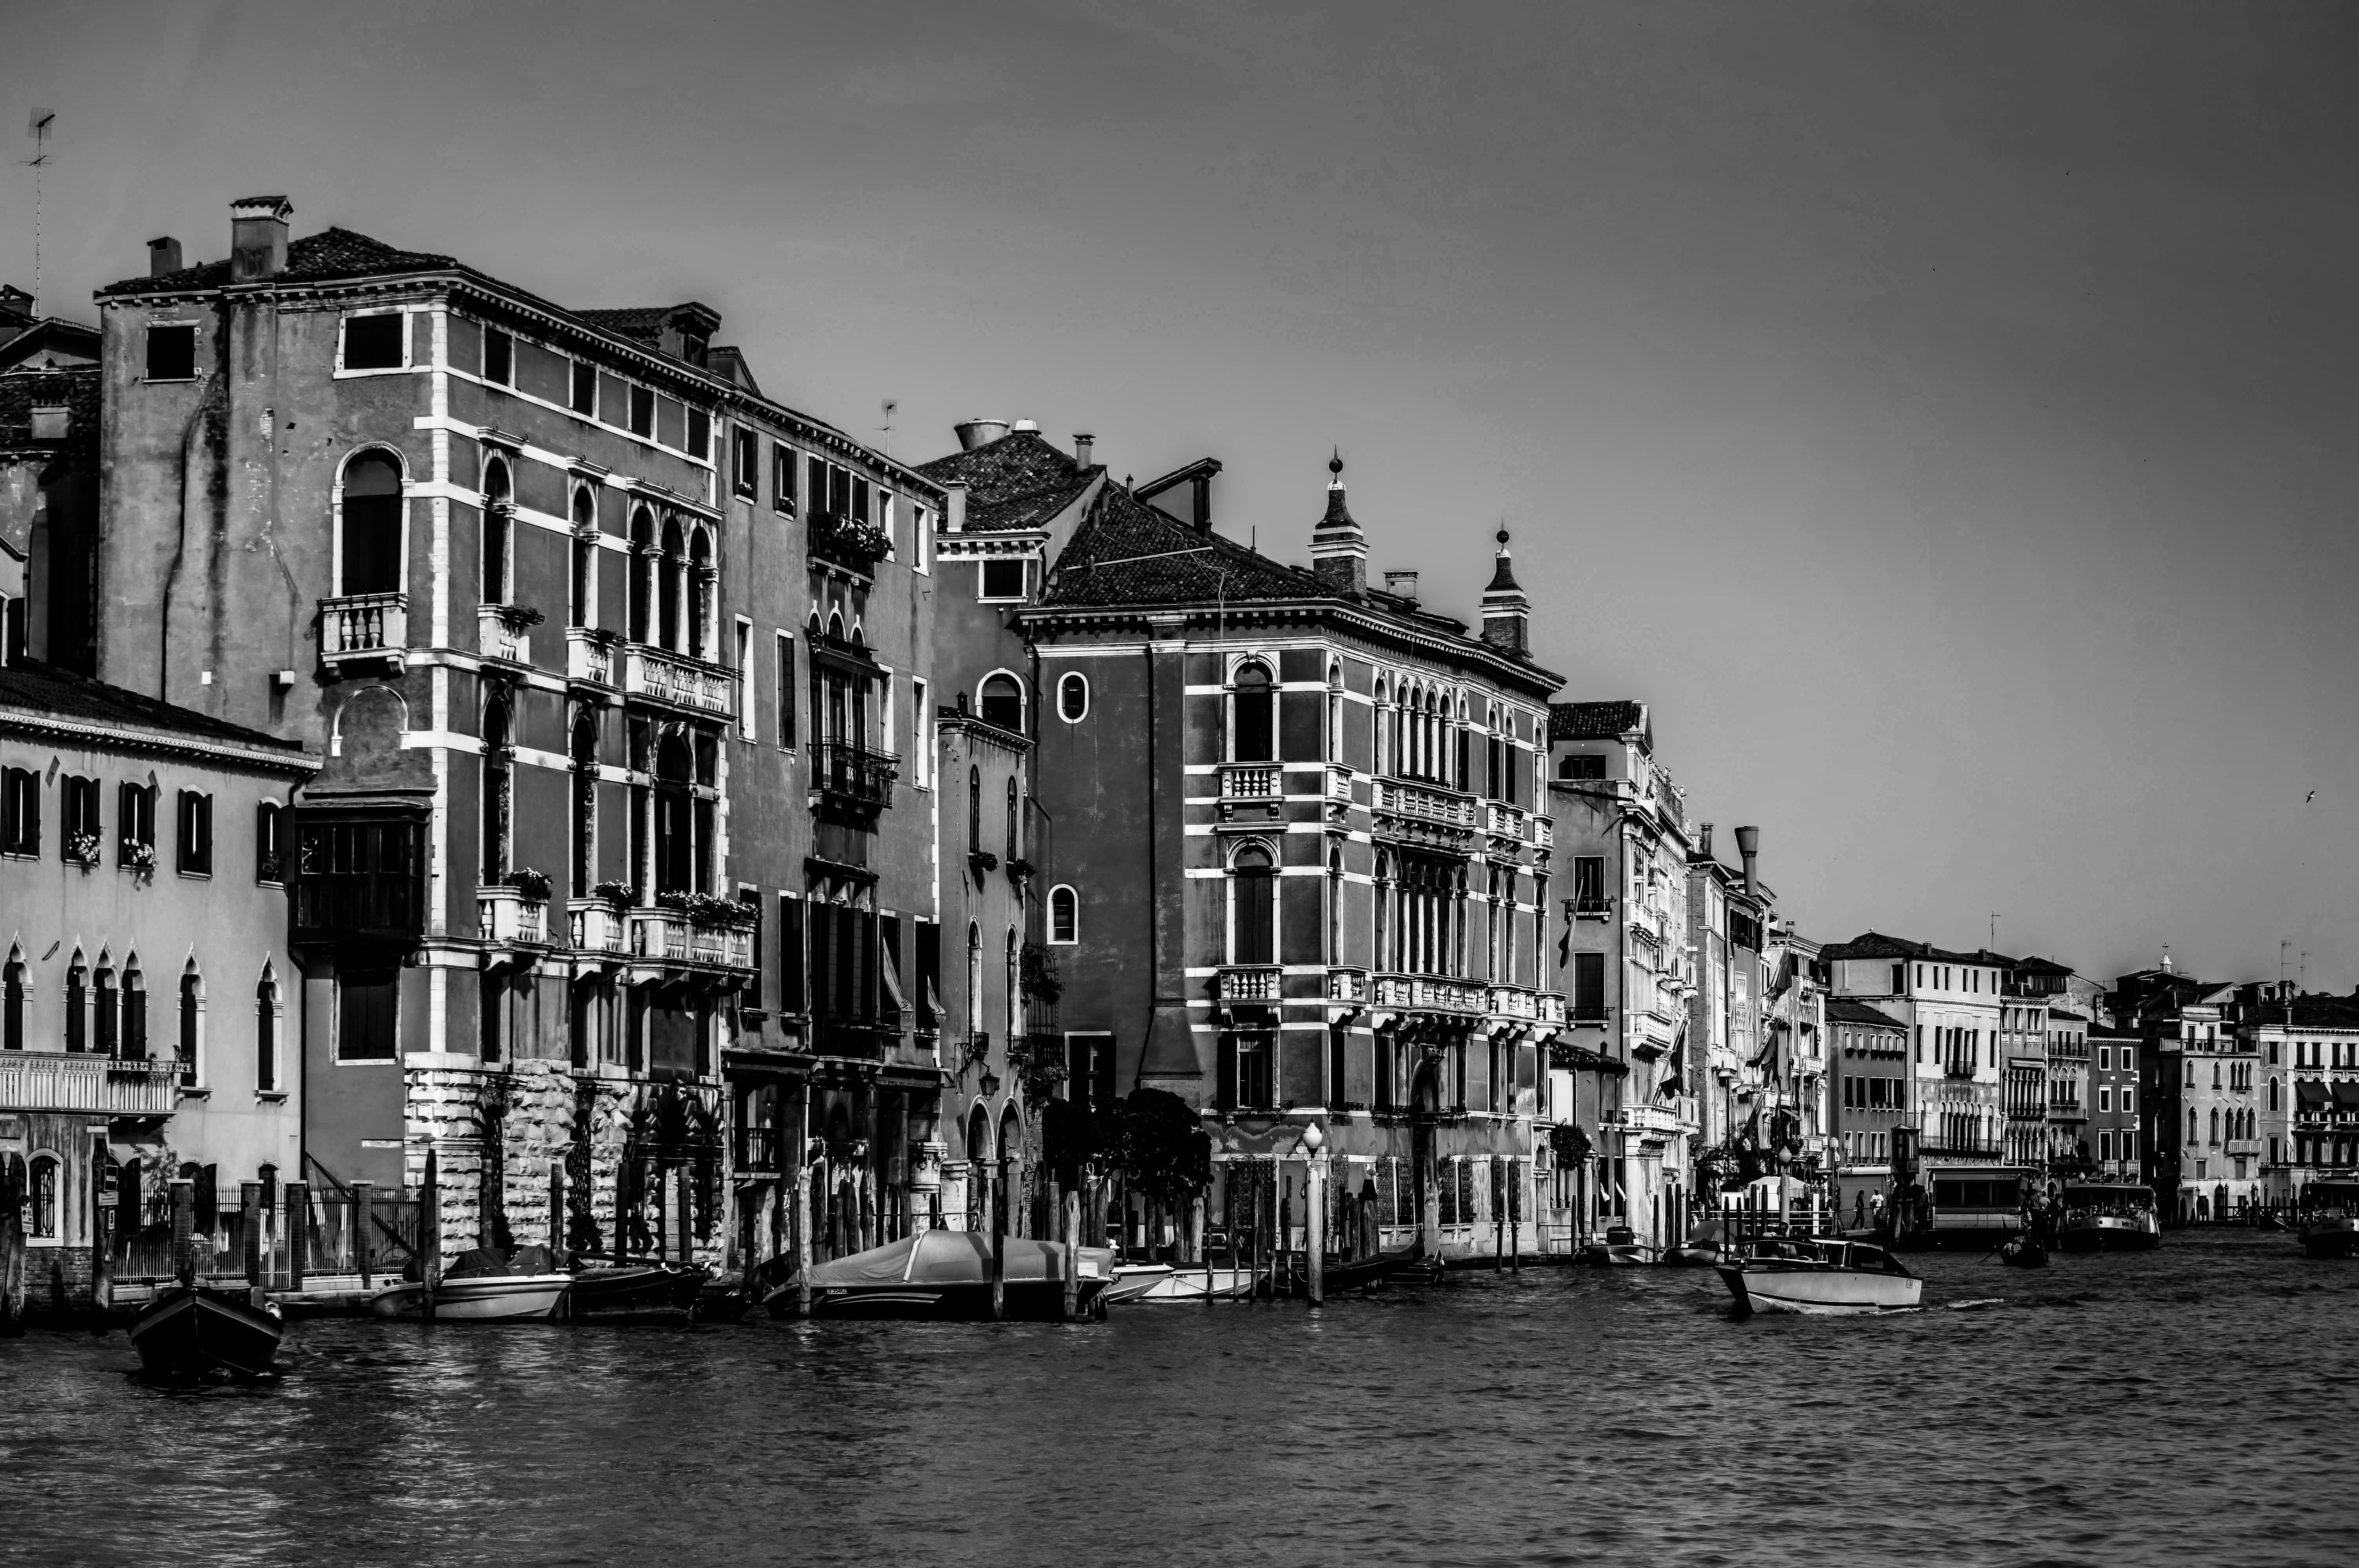 Concrete Houses Beside Body of Water, Outdoors, Watercraft, Water, Venice, HQ Photo